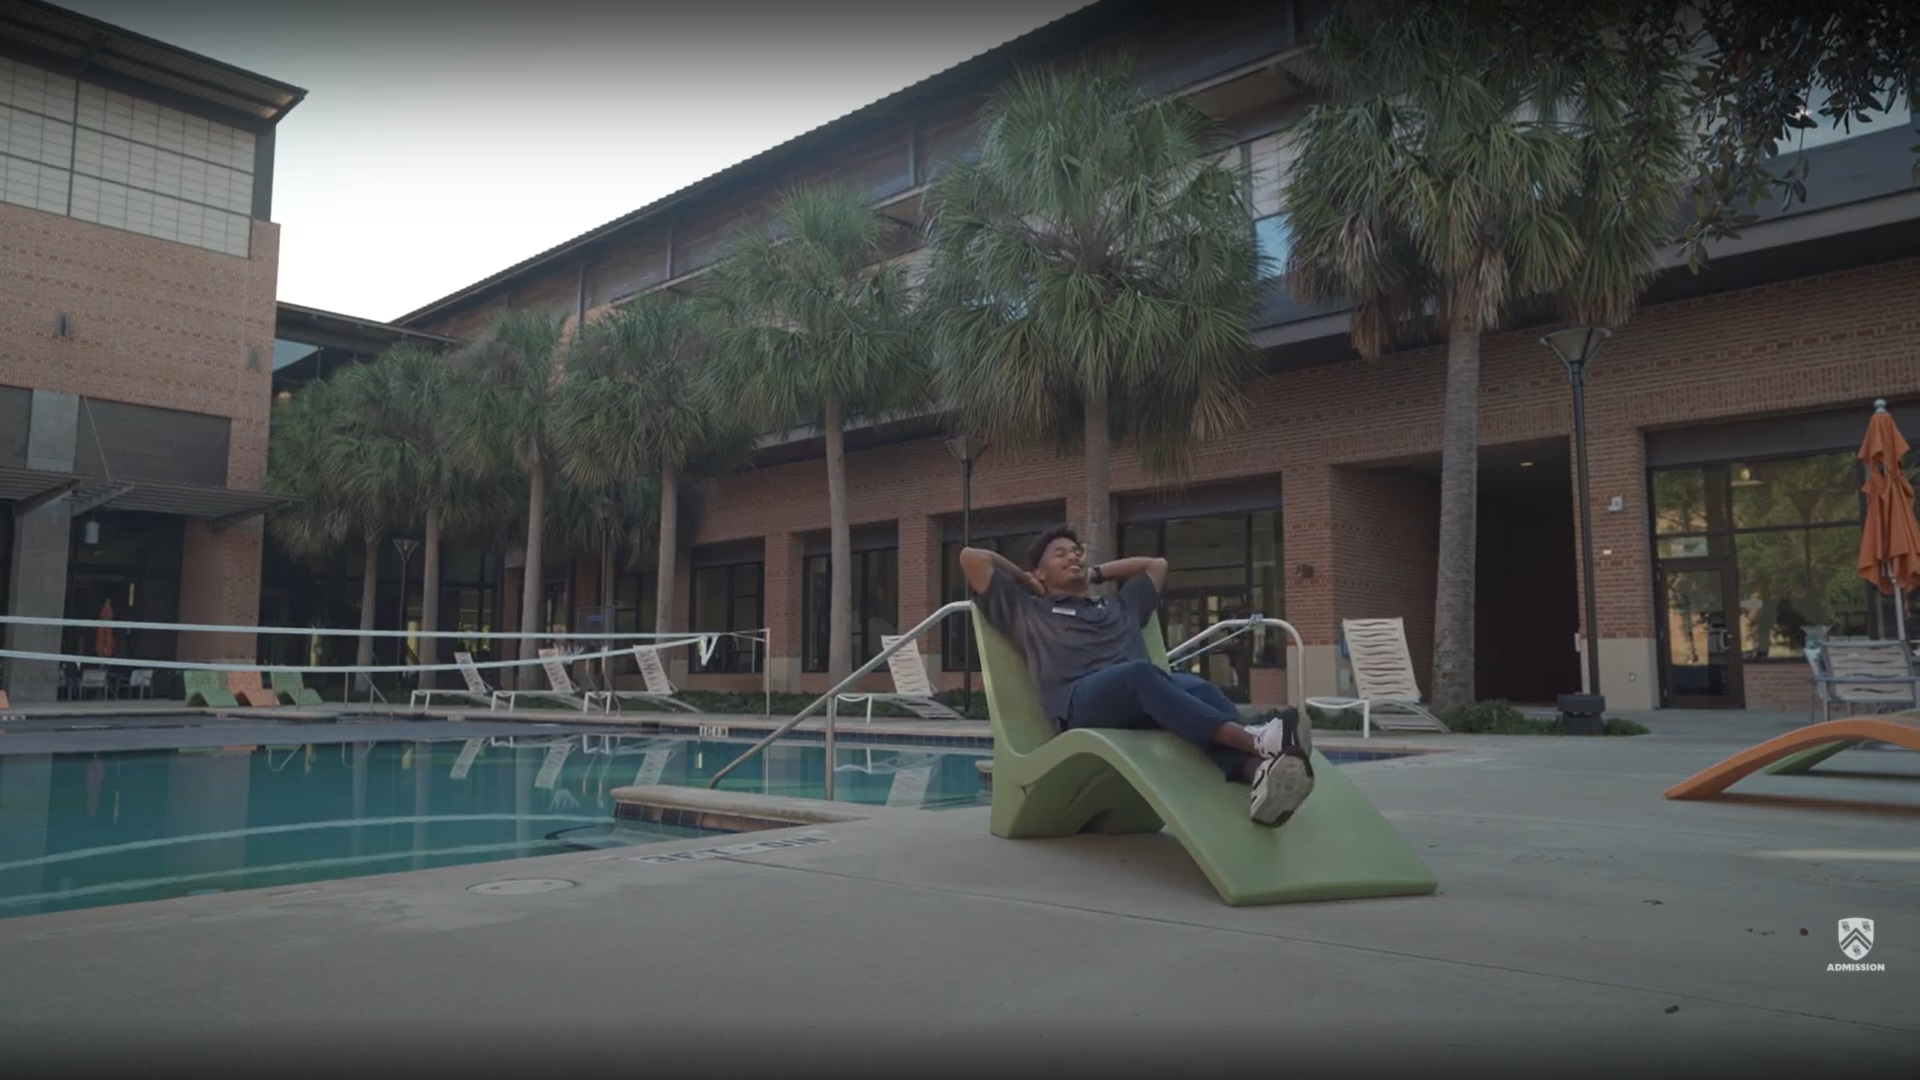 Tour guide relaxes on a lounge chair next to the recreation pool at the Rice Aquatics Center.